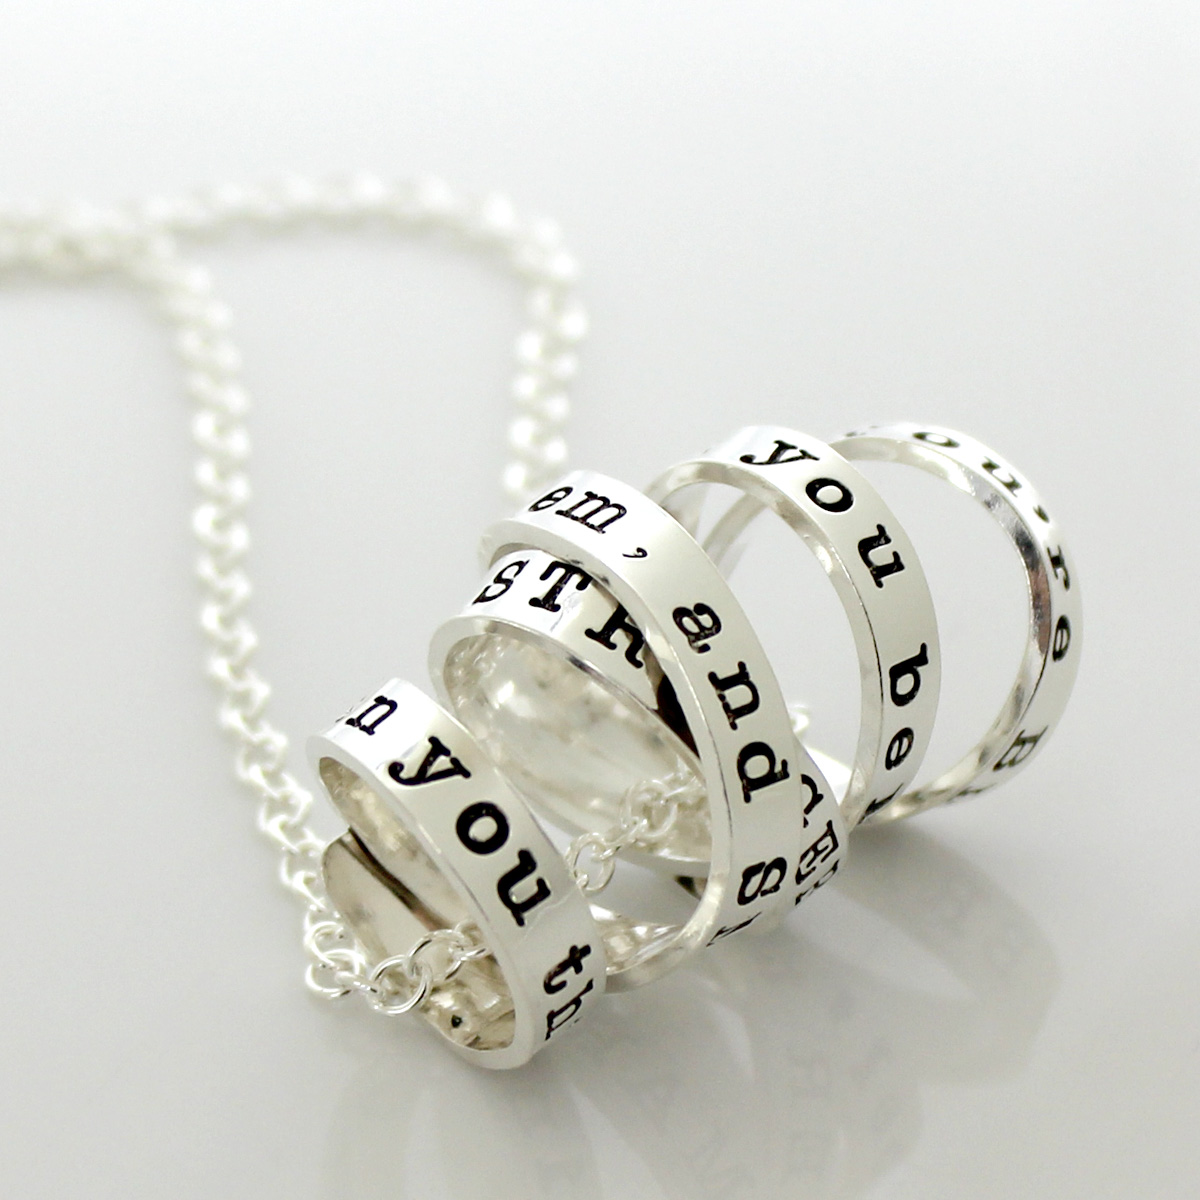 Inspirational Quote Necklace with a Twist